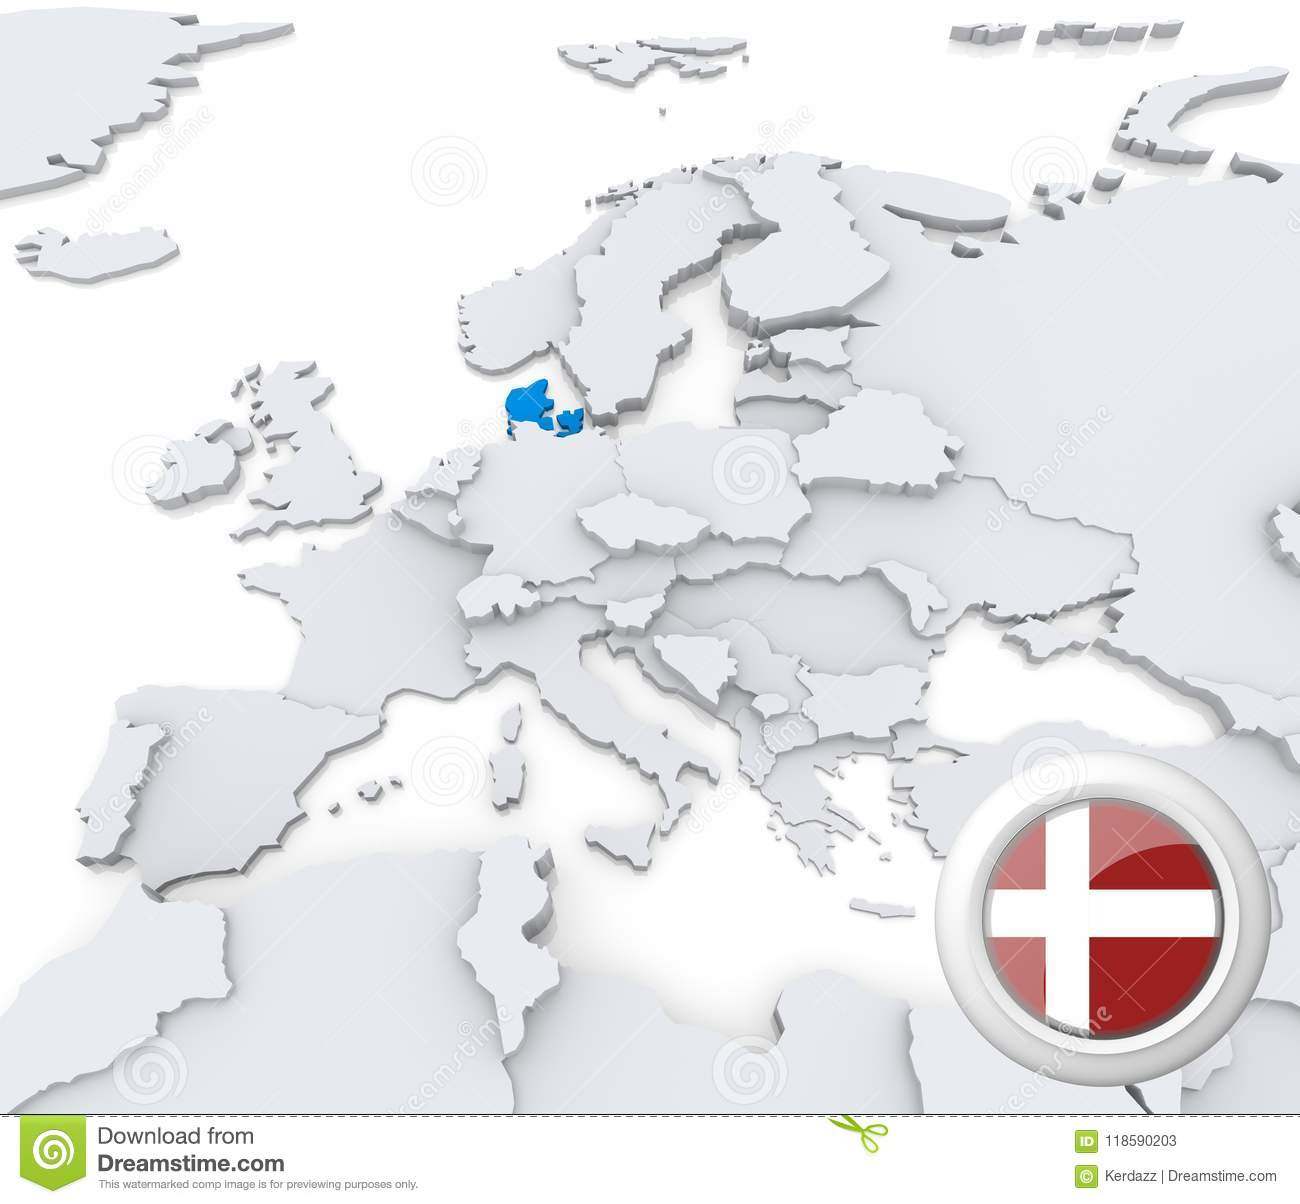 Denmark On Map Of Europe Stock Illustration Illustration Of Icon